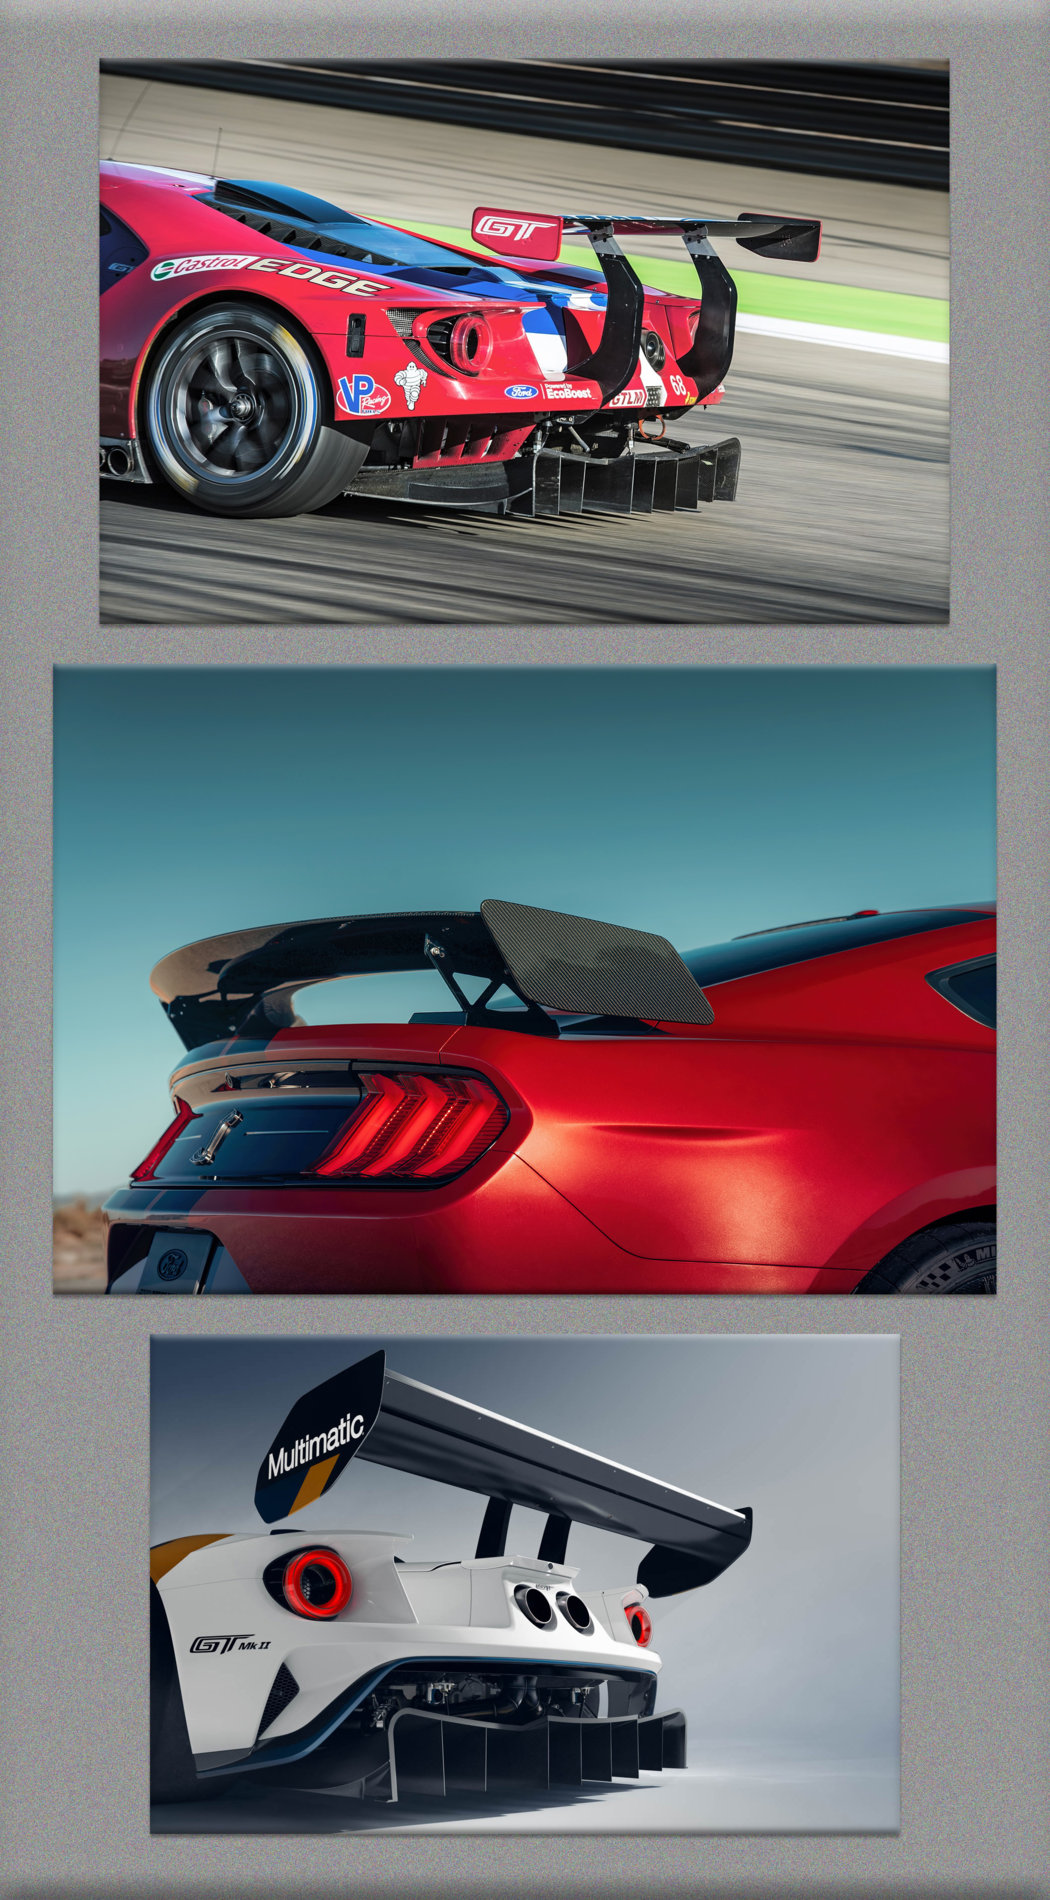 2020-gt500-wing-comparisons.jpg